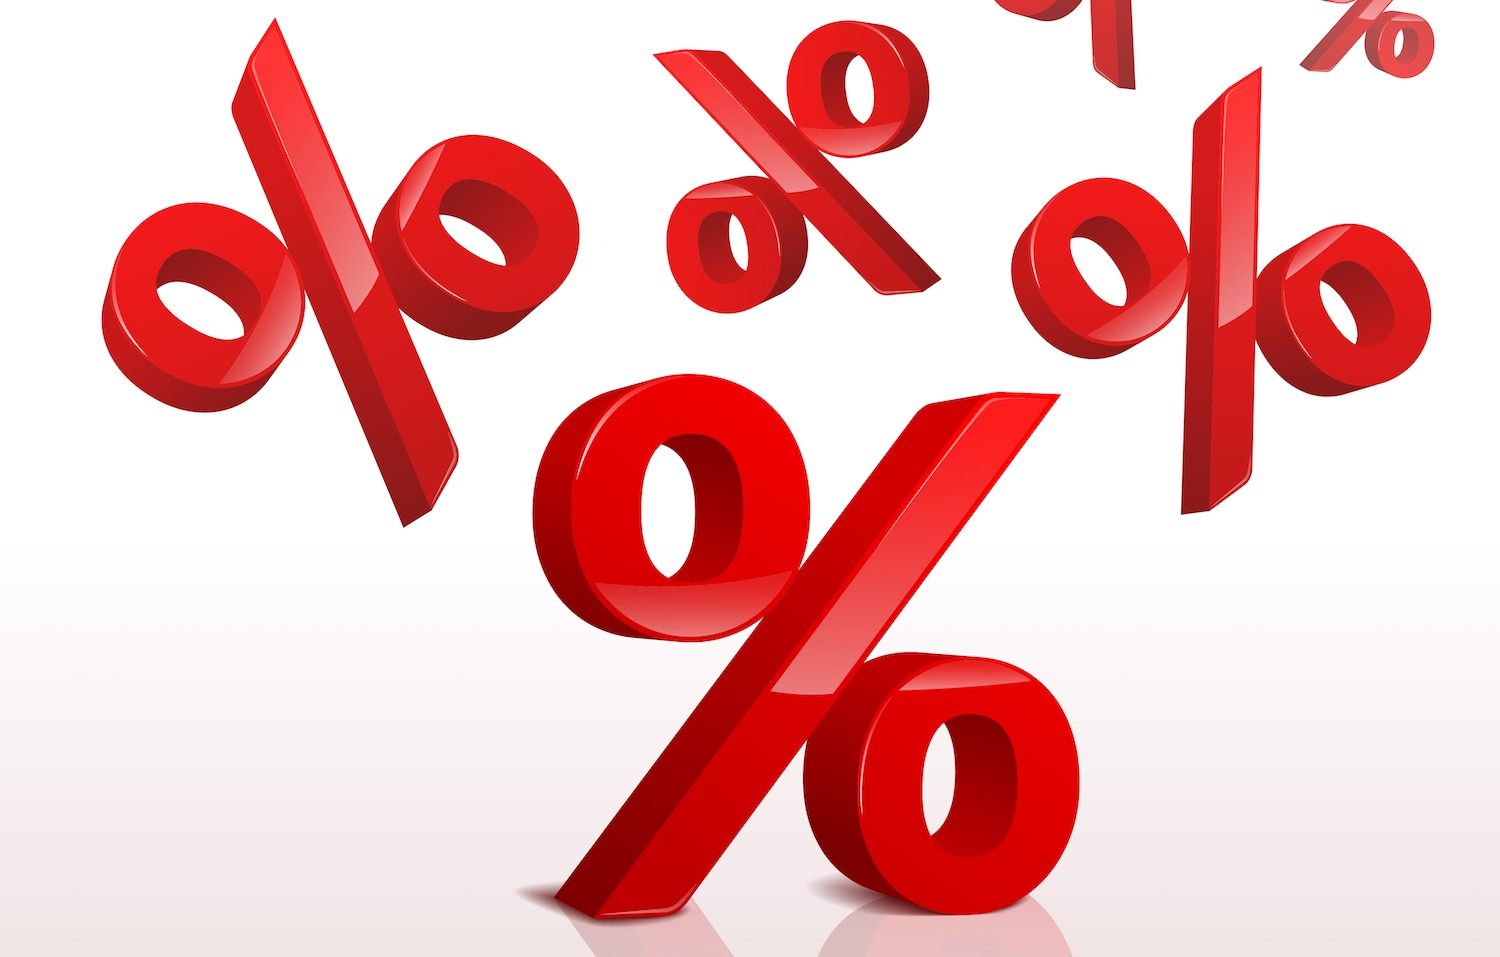 icon of many % symbols representing compounding percentages.